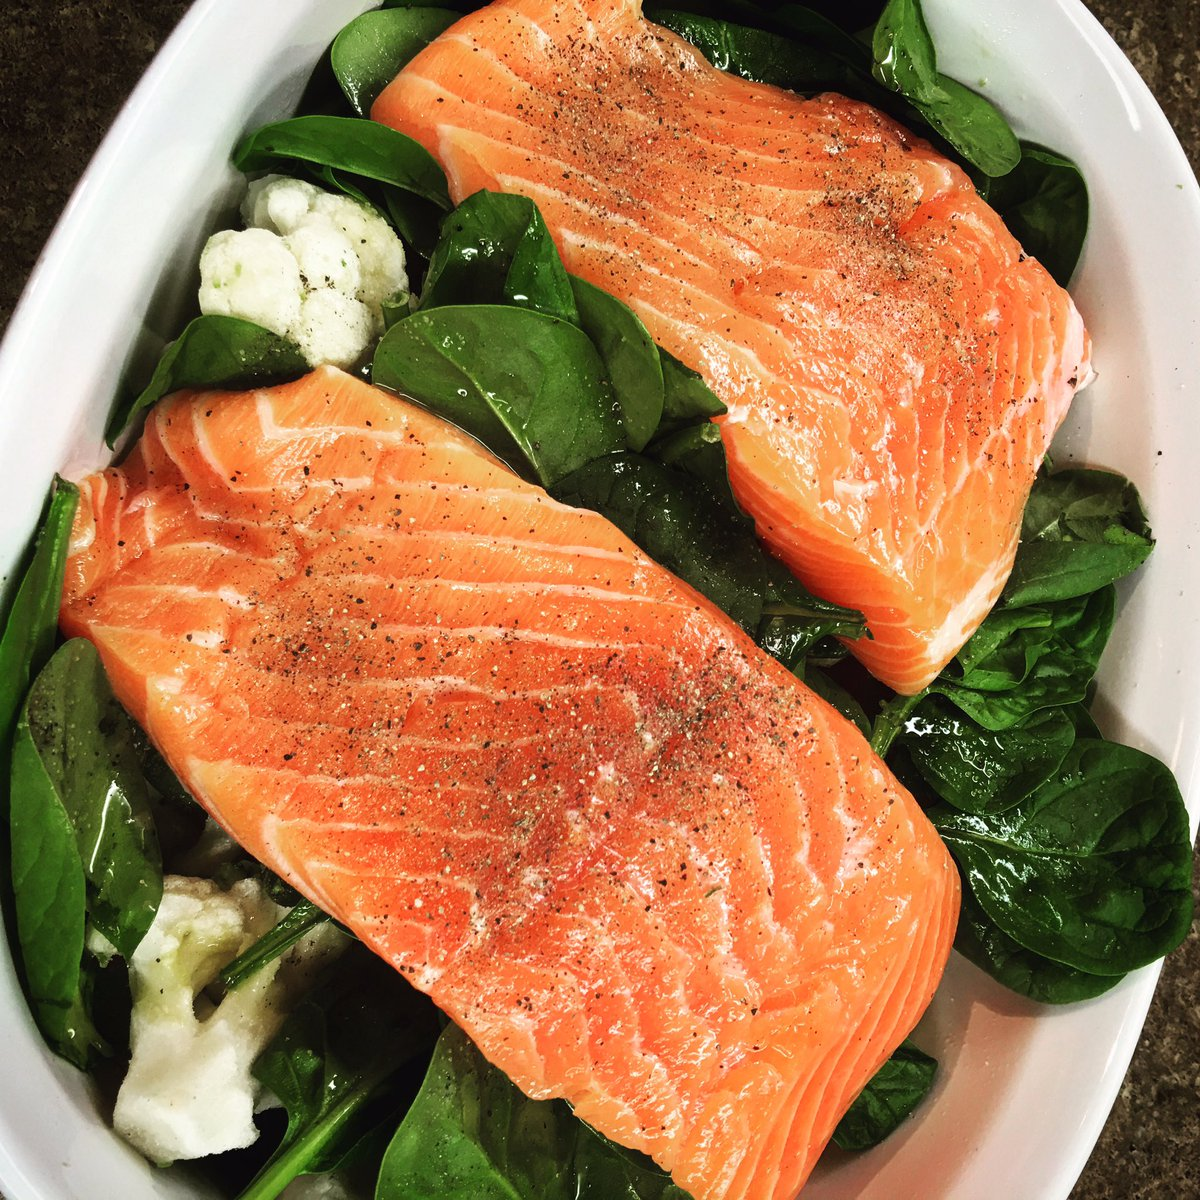 #lunch is #salmon on bed of veggies into the oven for 30mins... #healthyeating #lowcarb #homeawayfromhome #winnipeg https://t.co/IM1kuVlJH6